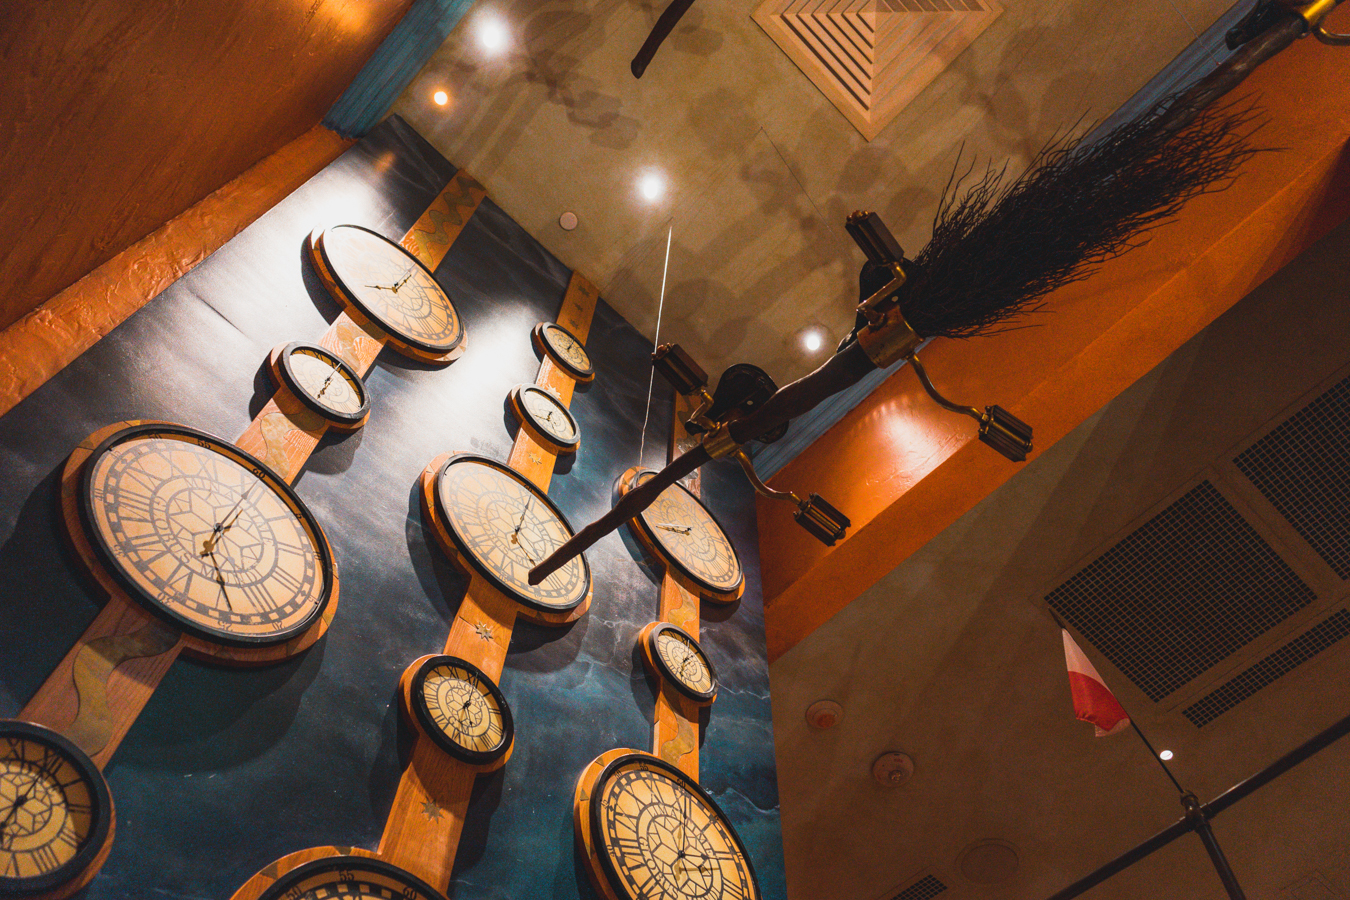 These clocks on the wall include shout-outs to the wizarding world's graphic designers.